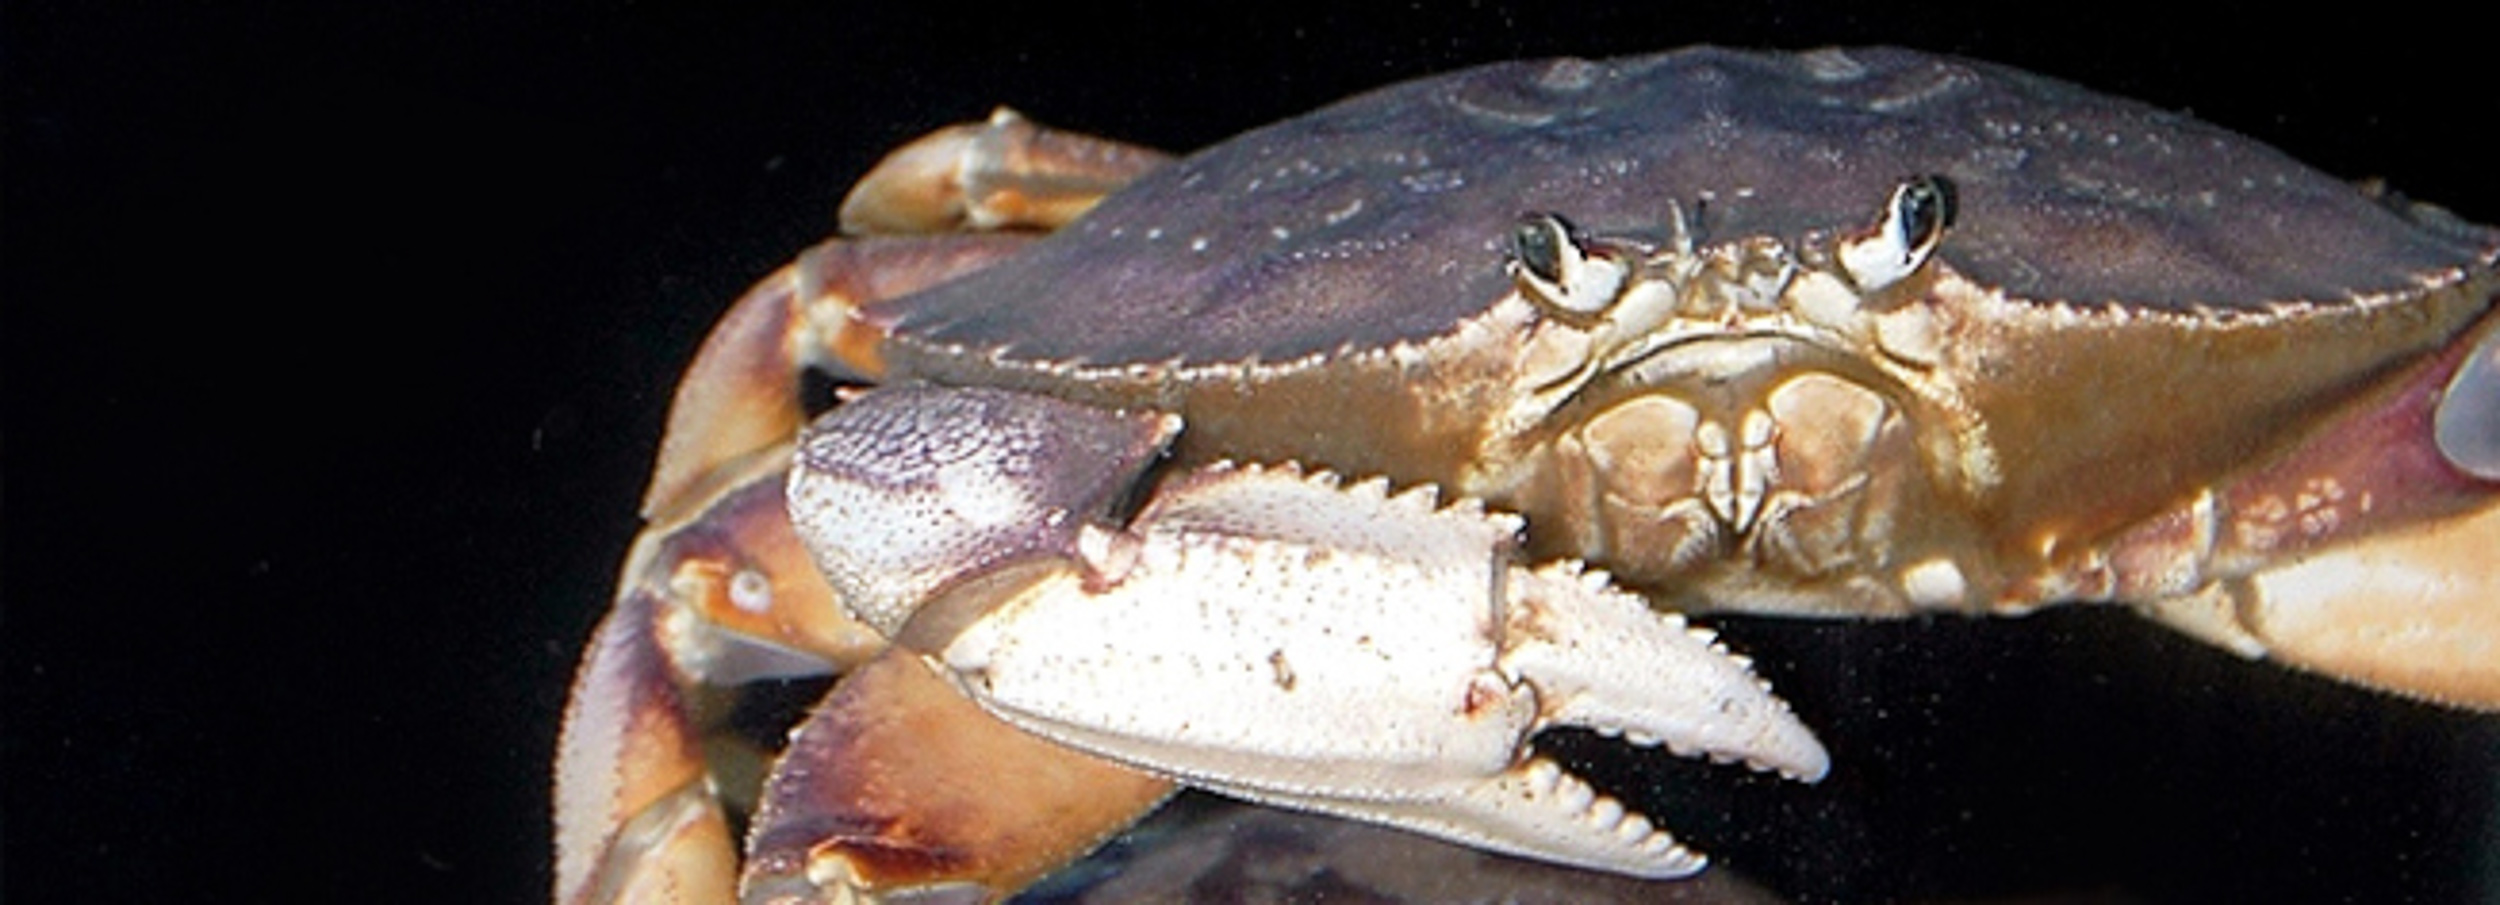 Crabs: The Amphibious Creatures of the Sea